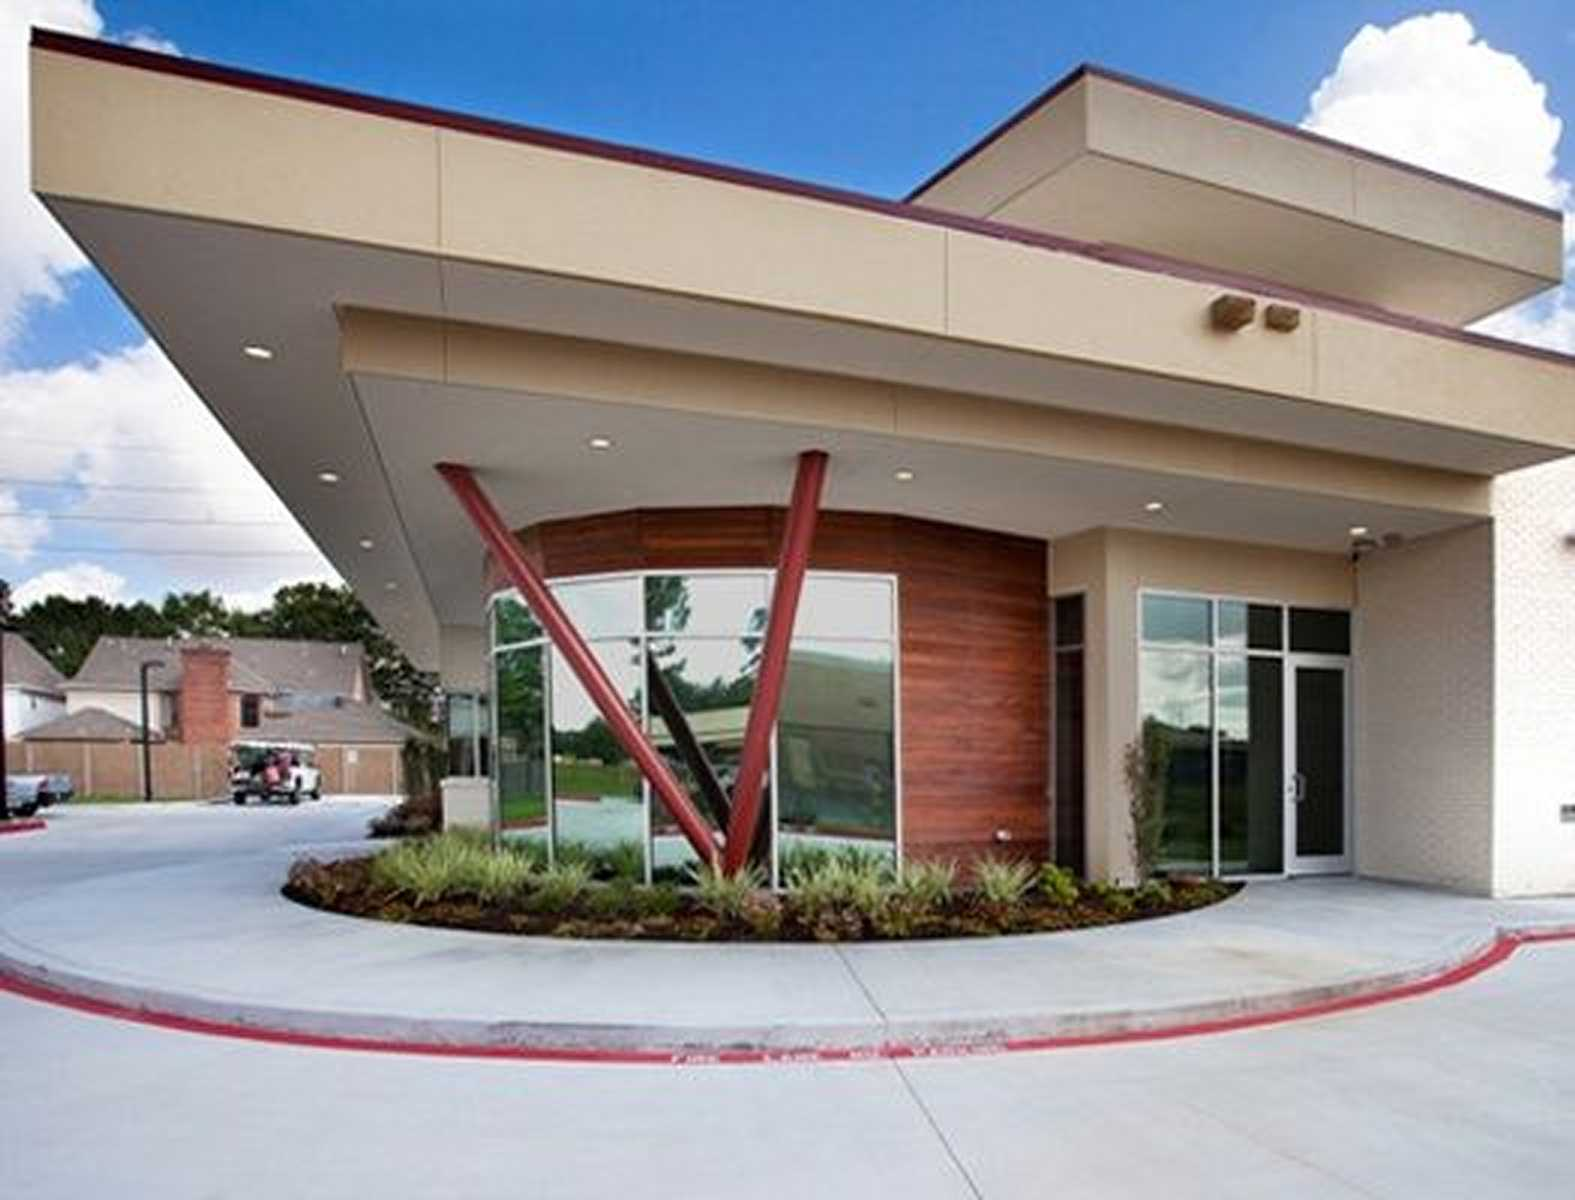 Commercial Office Building Designers   Studio RED Houston on texas house investors, texas house architecture, texas house style, texas house photography, texas house plans, texas house art,